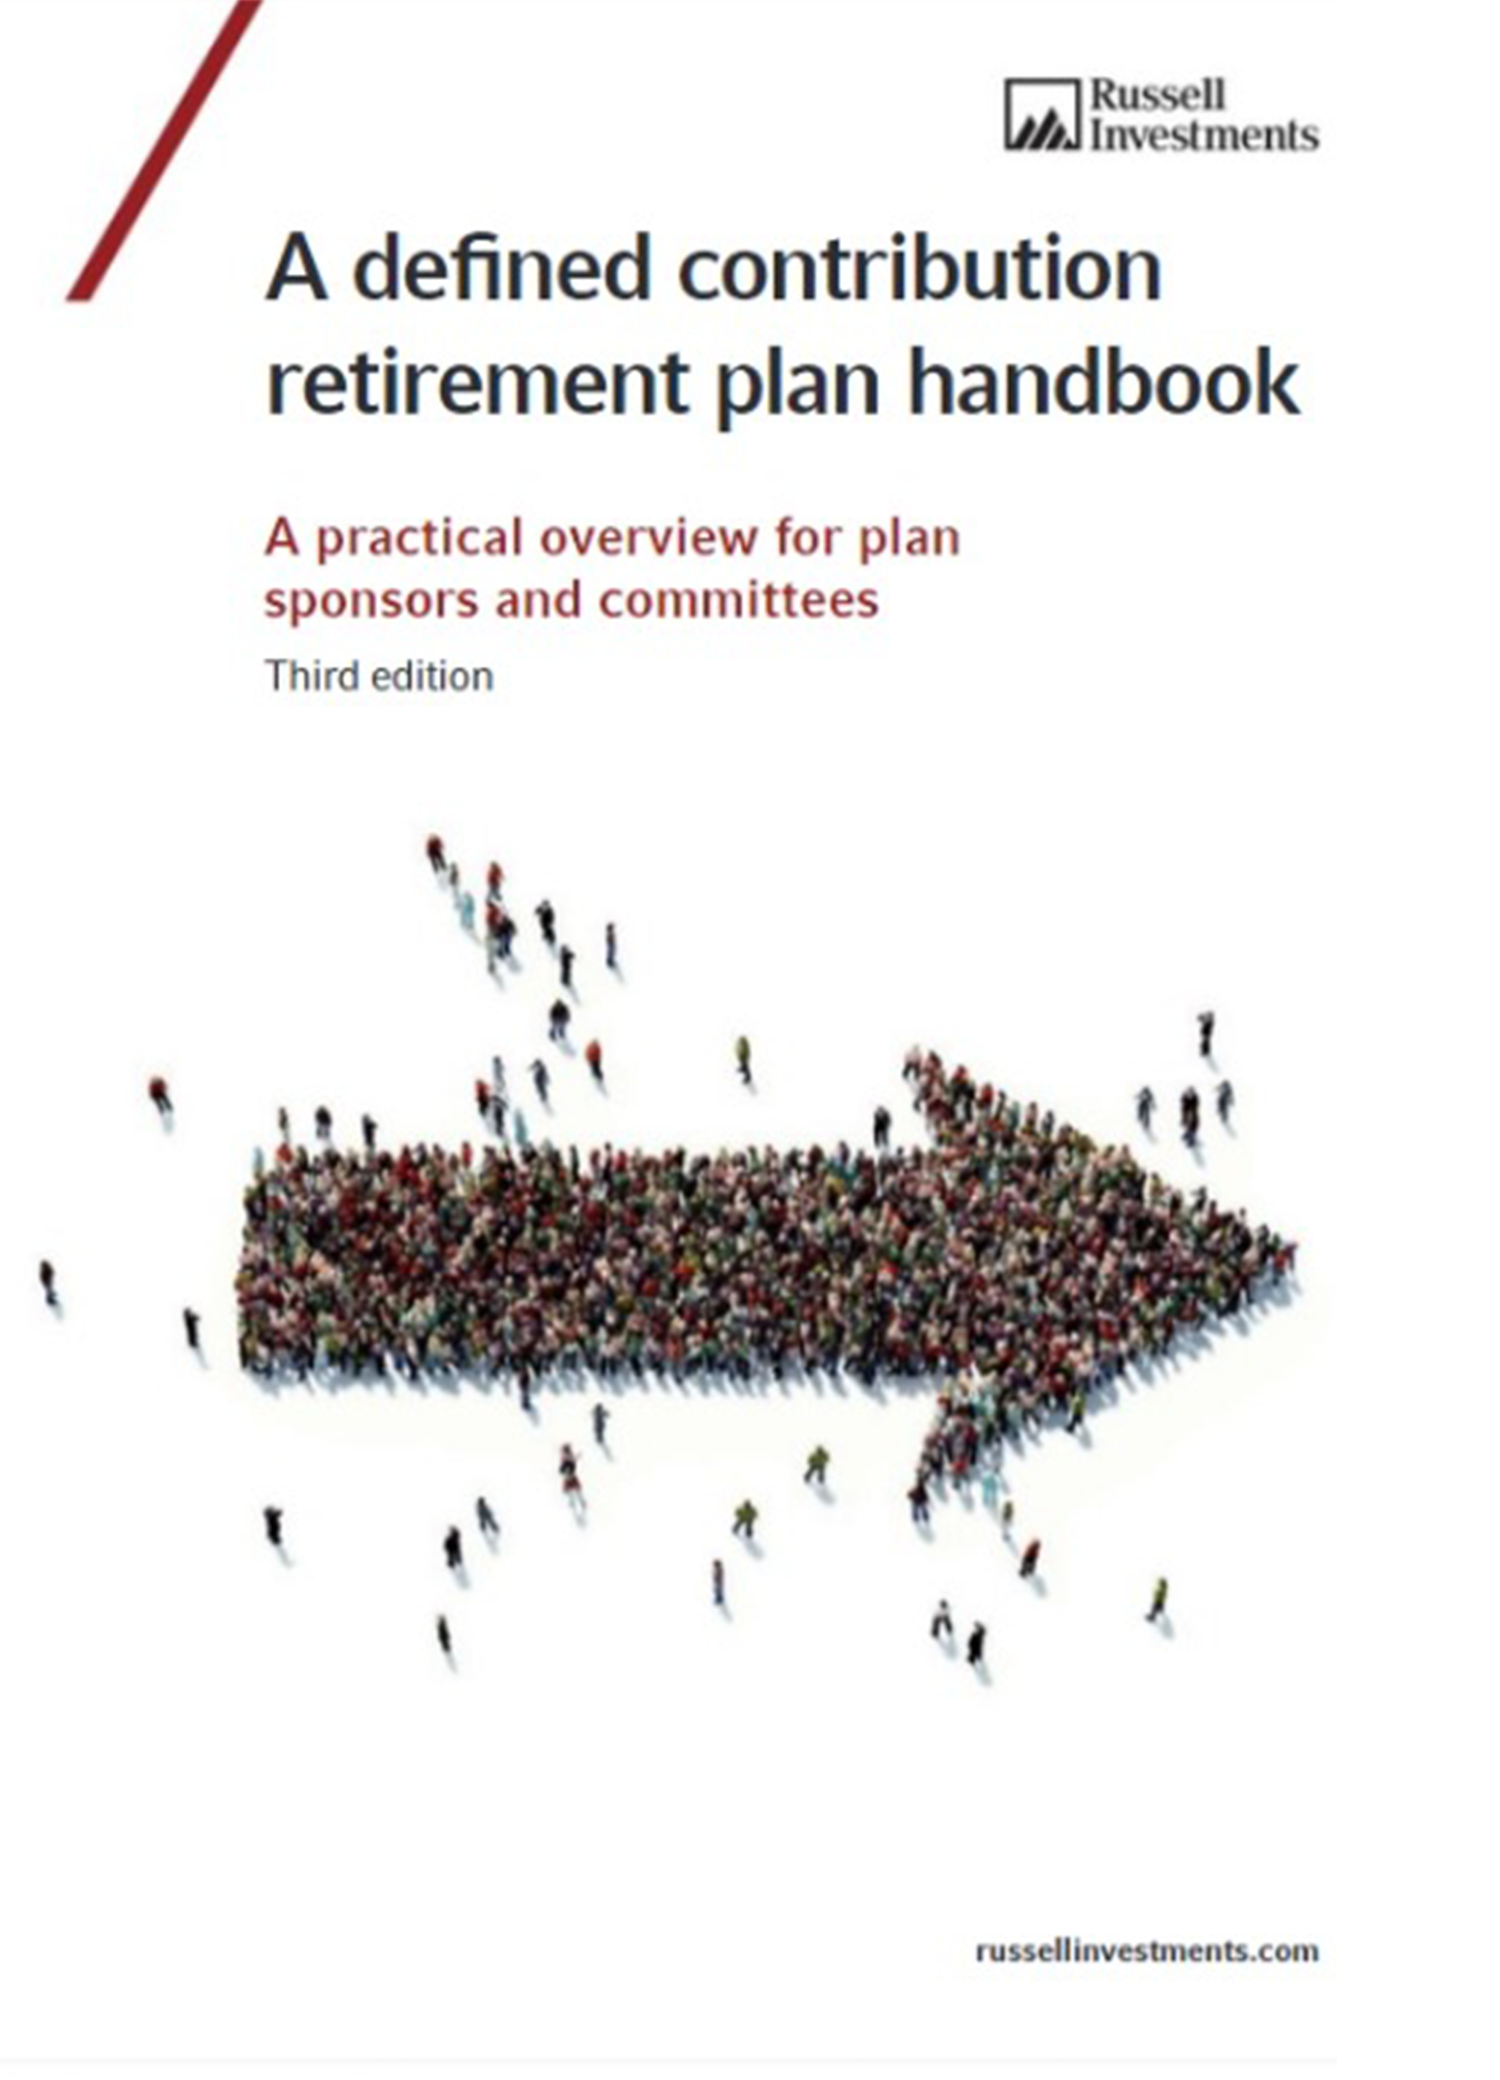 Cover of our defined contribution retirement plan handbook